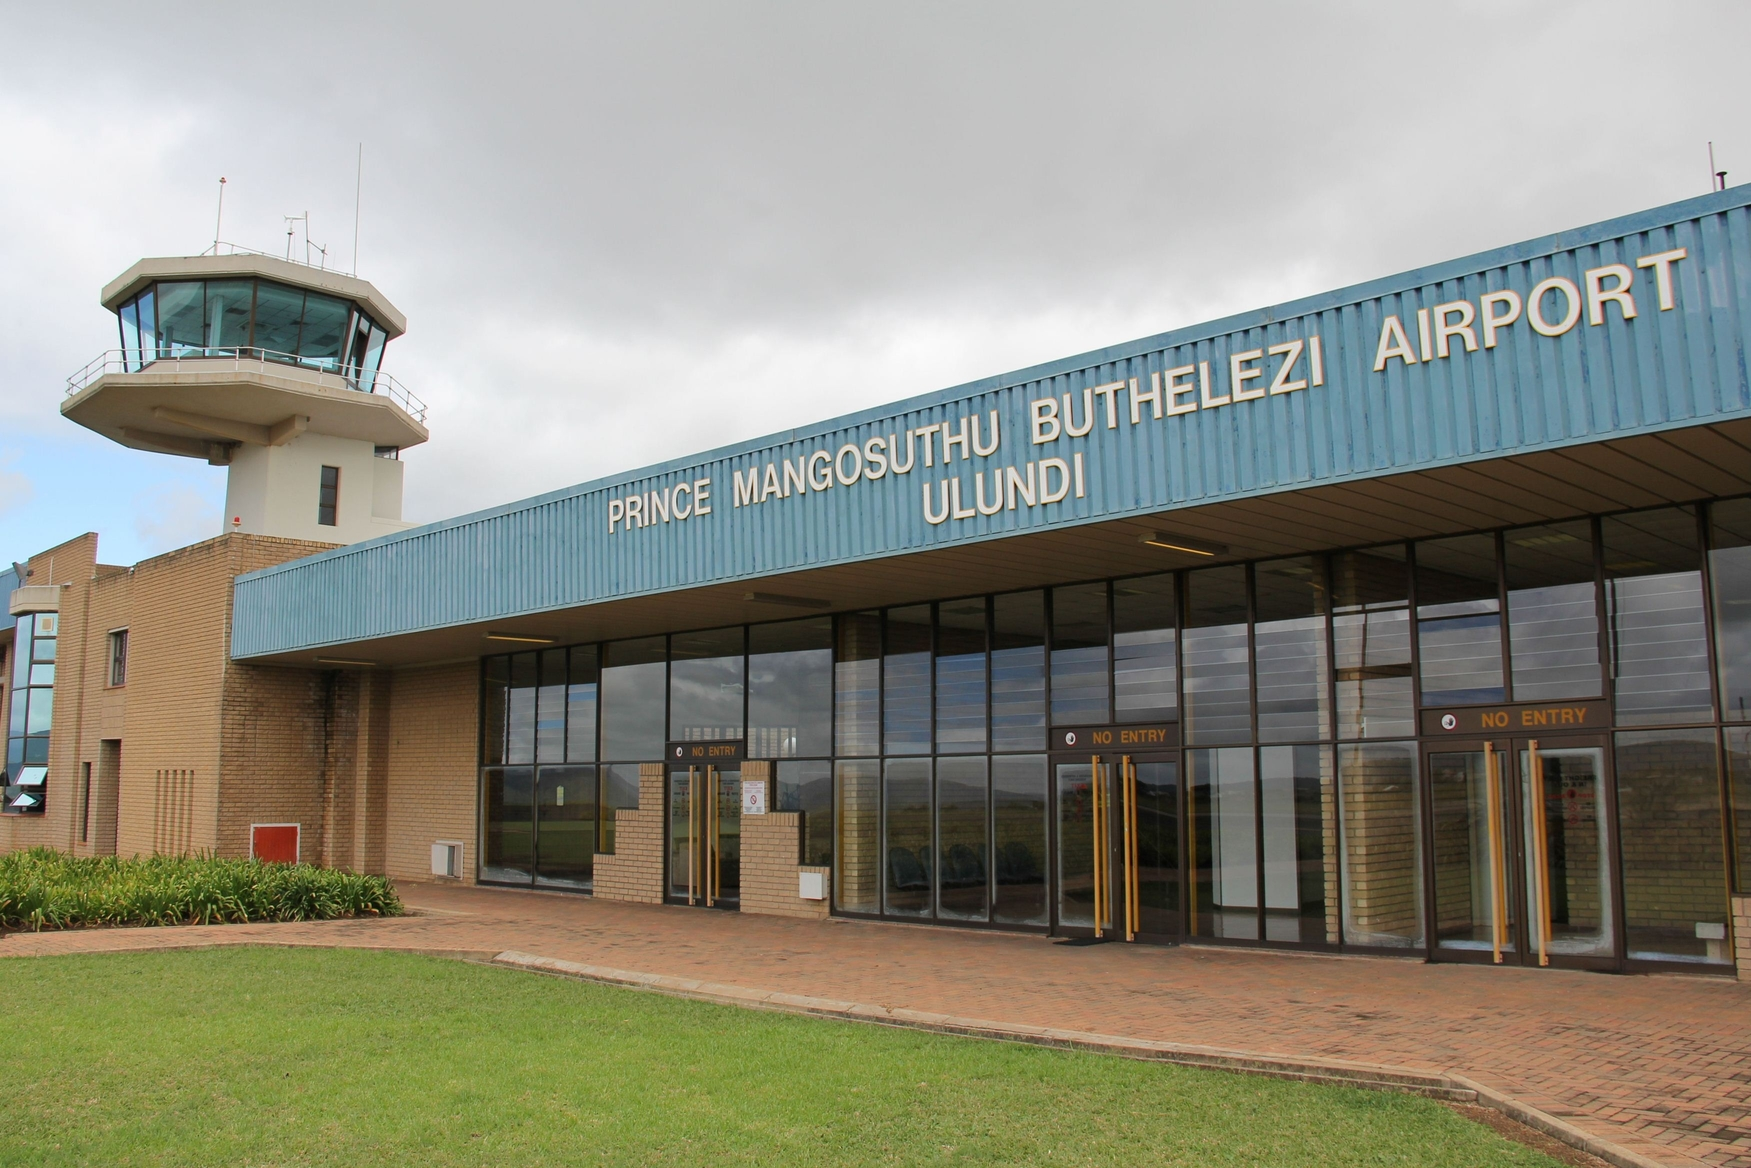 Photo of Prince Mangosuthu Buthelezi Airport by Lesley Schroeder